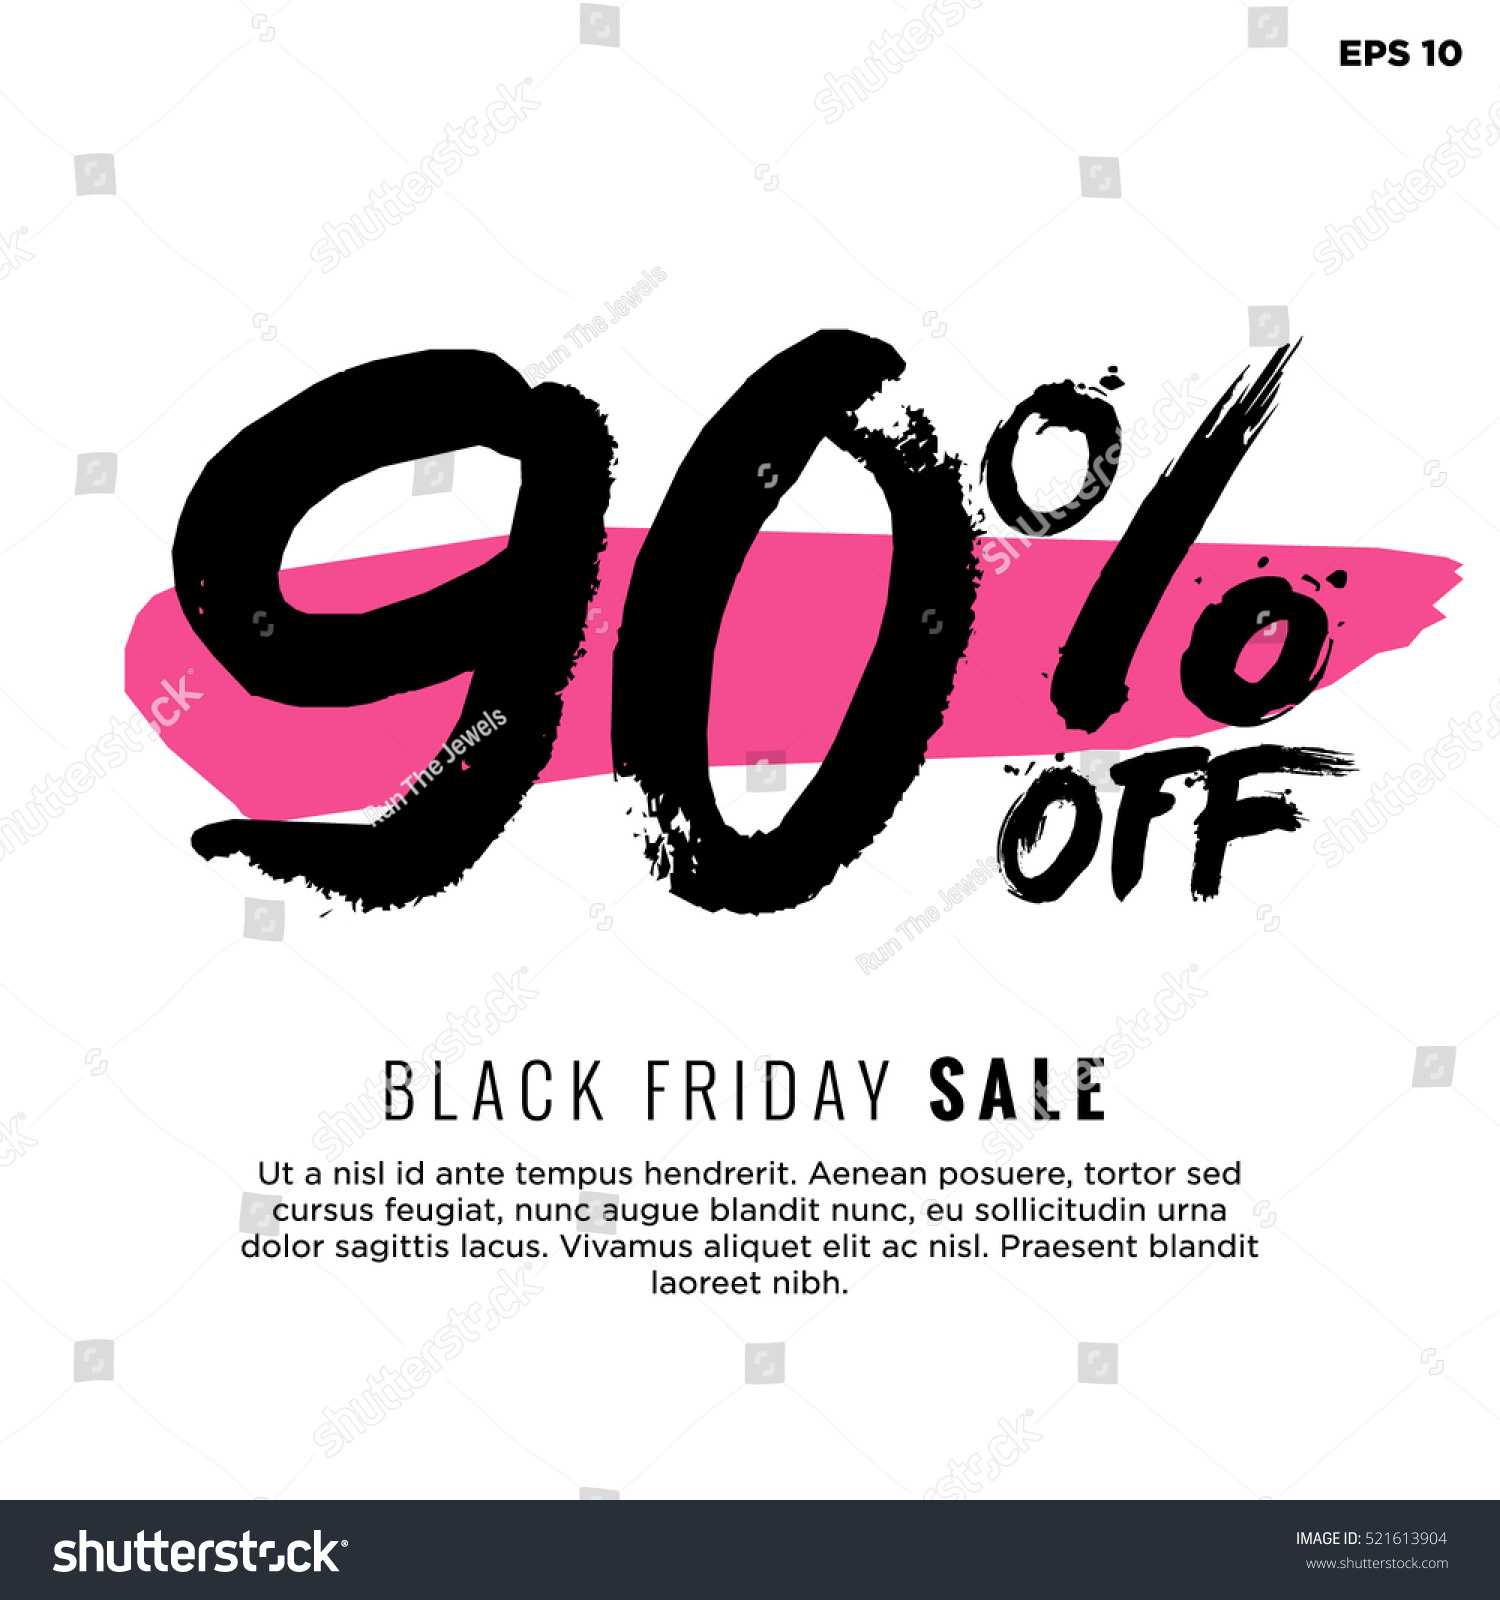 90 Off Black Friday Sale Promotional Stock Vector Royalty Free 521613904